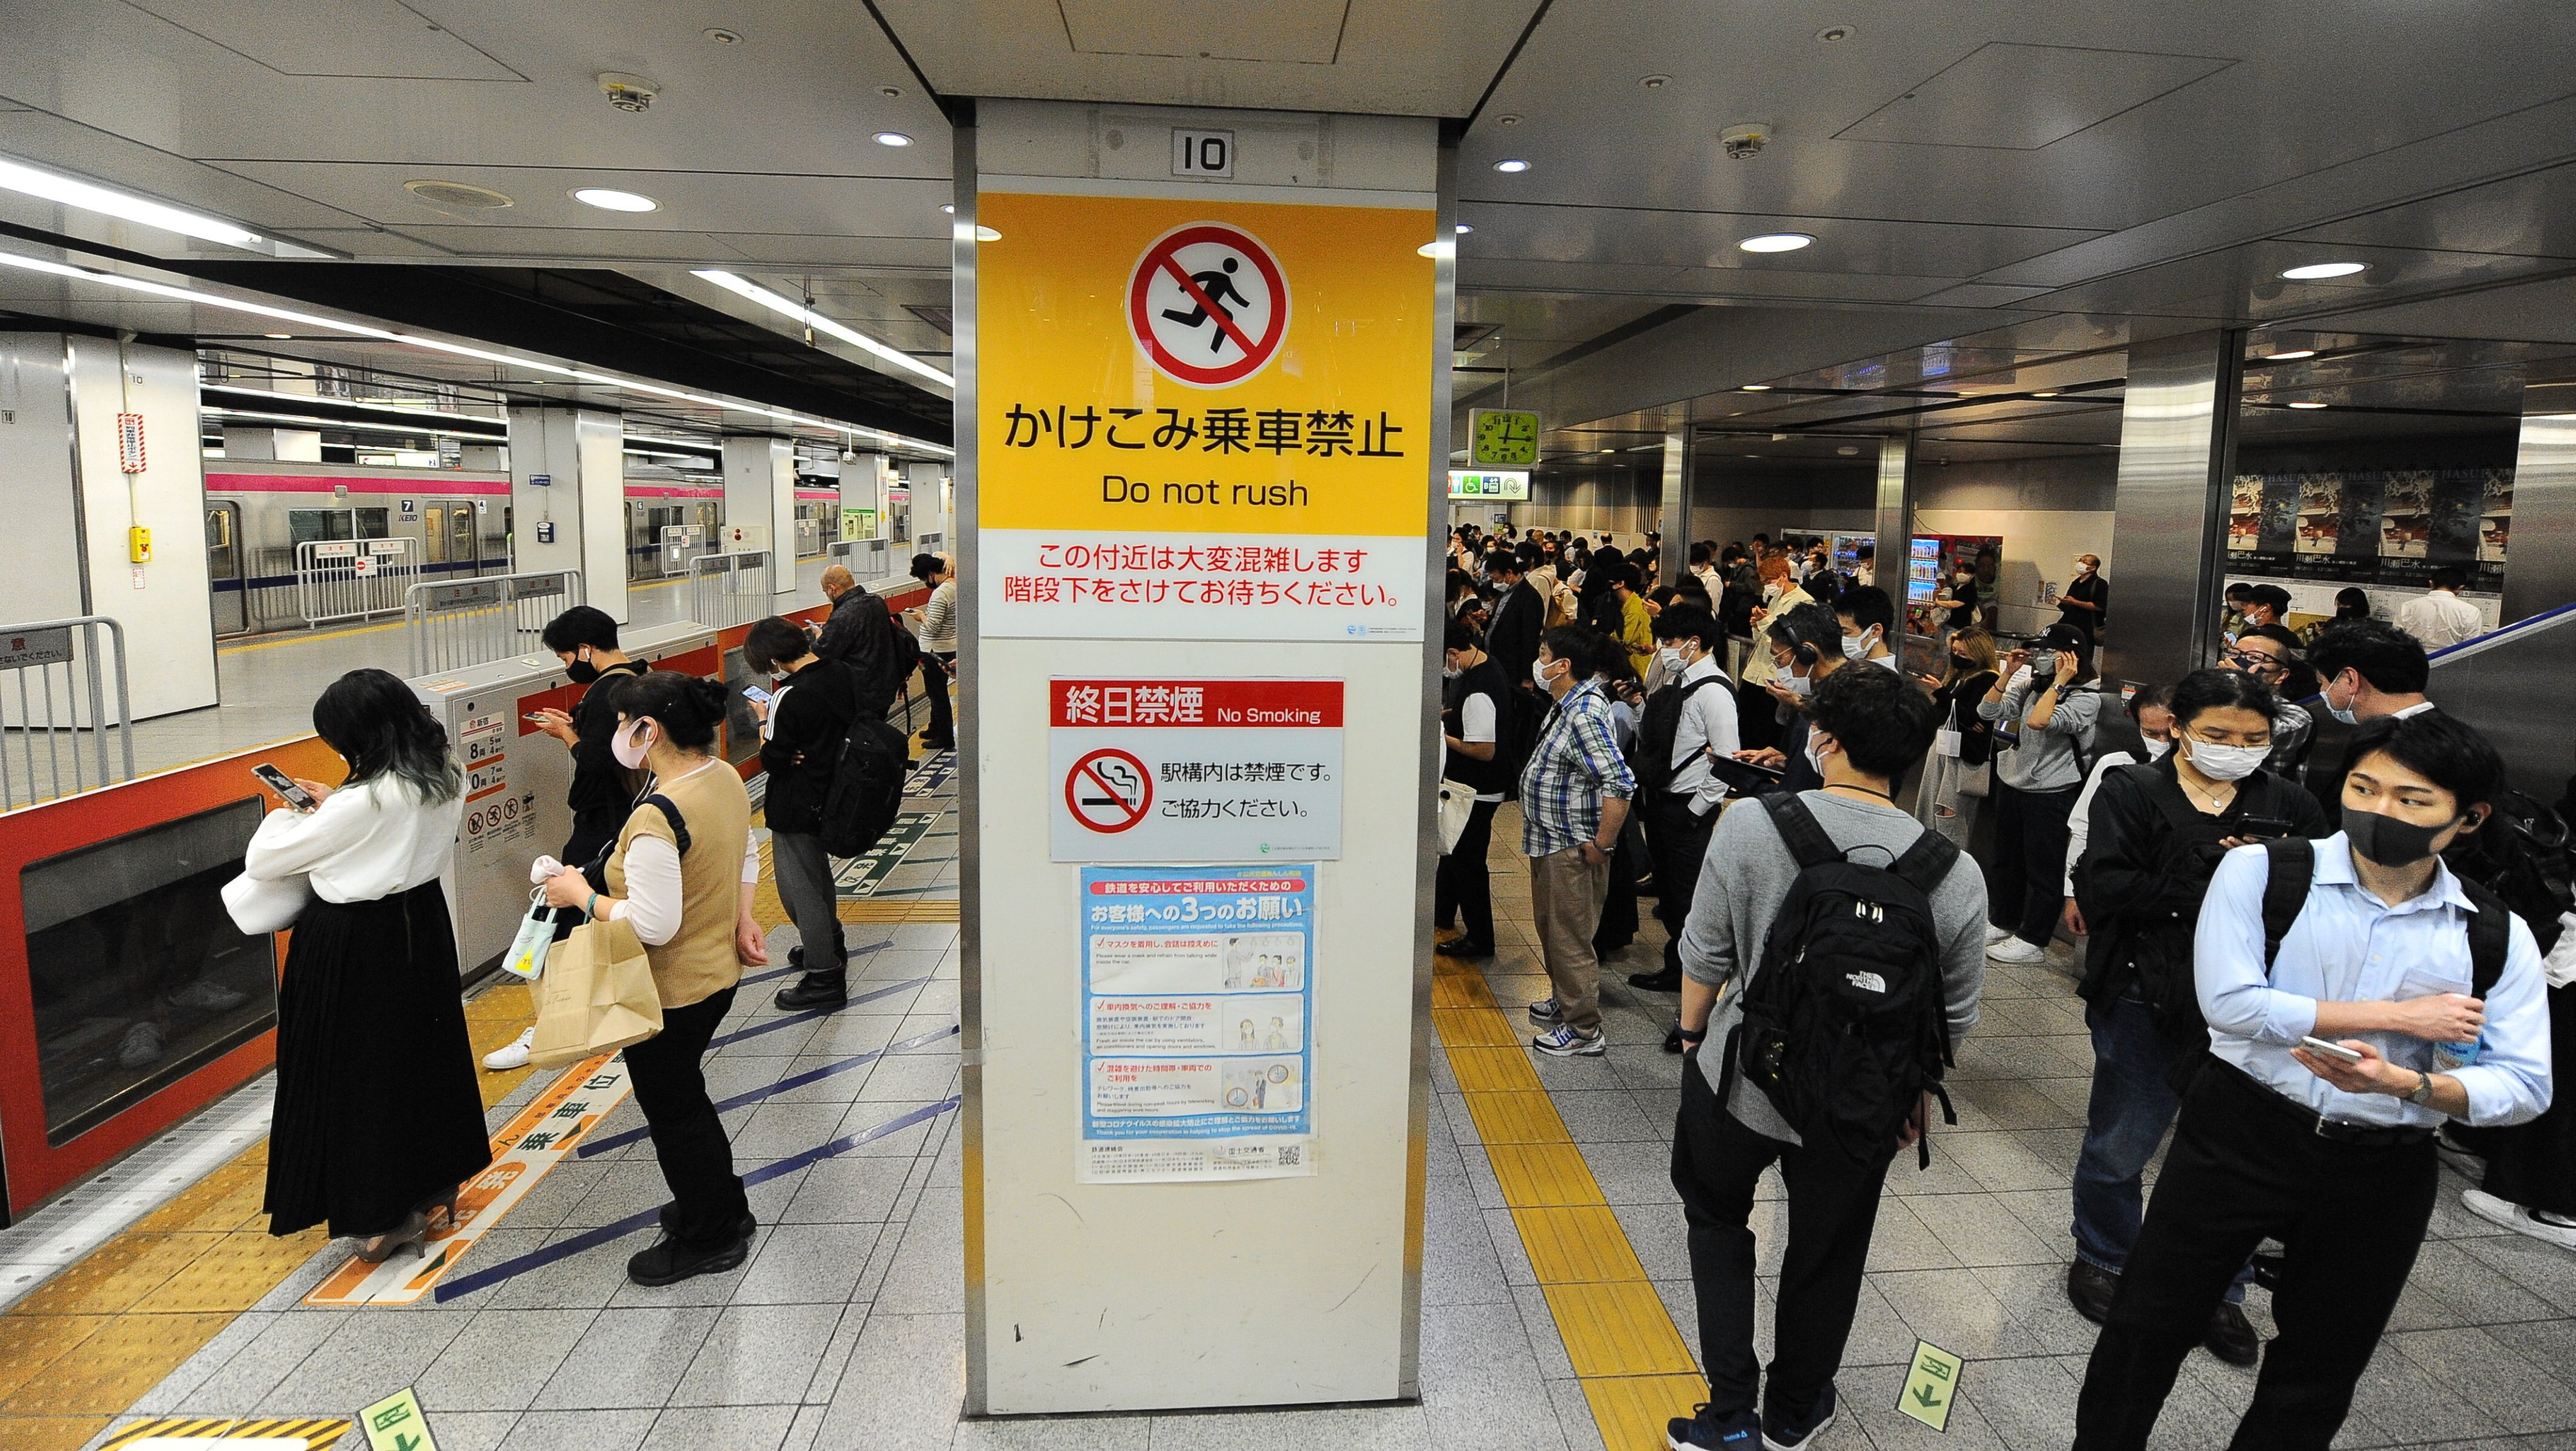 Rail services disrupted in Tokyo due to earthquake